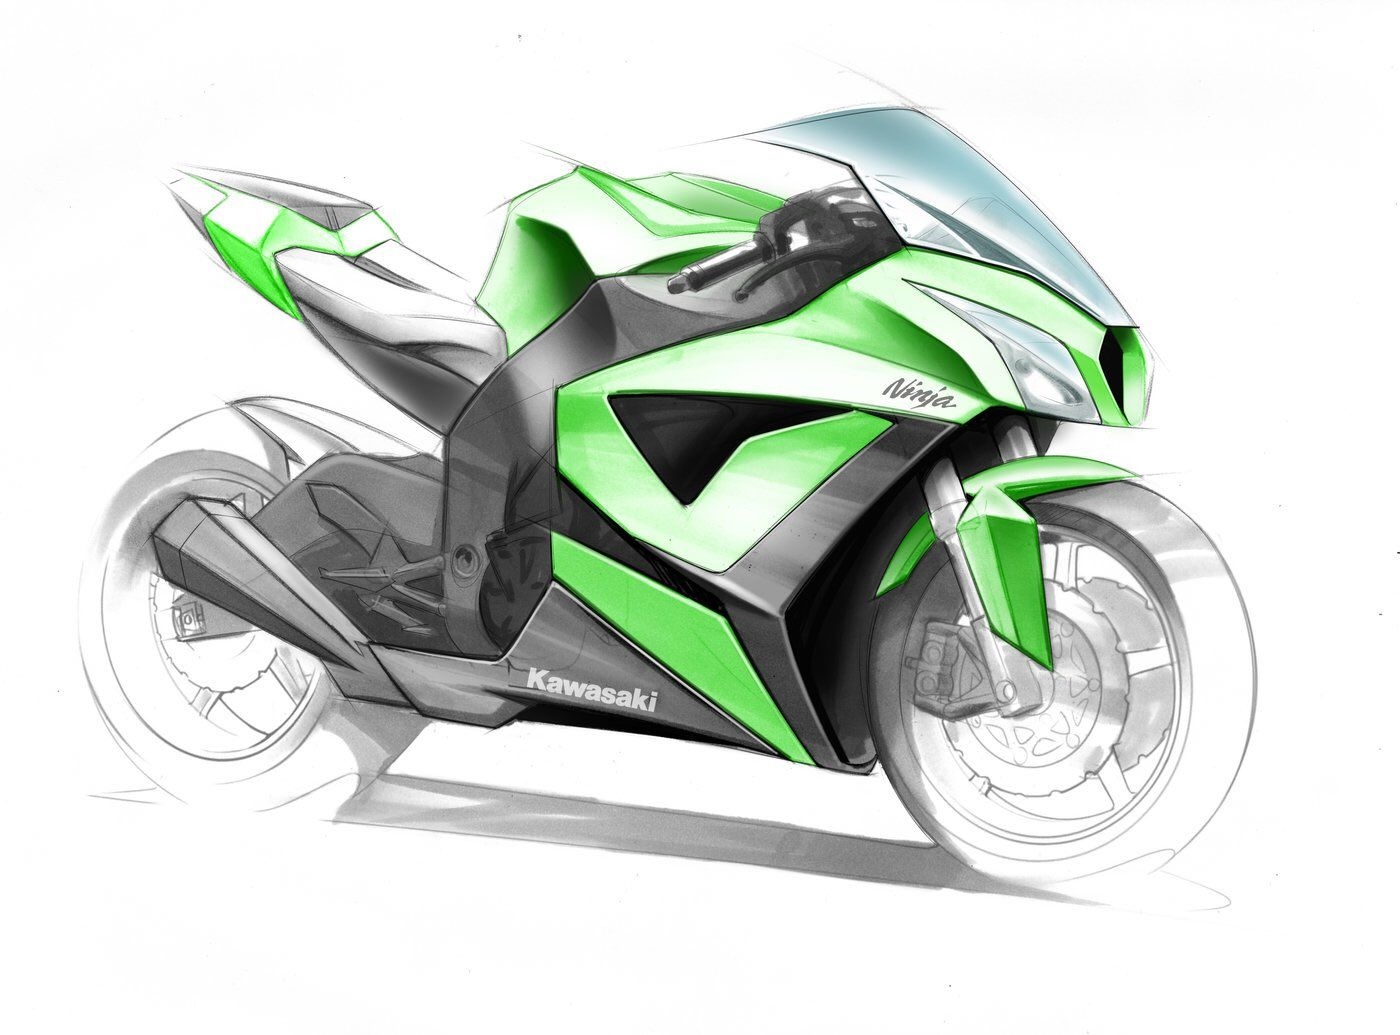 Design Sketches Automotive On Twitter Bike Sketch Motorcycle Artwork Motorcycle Drawing